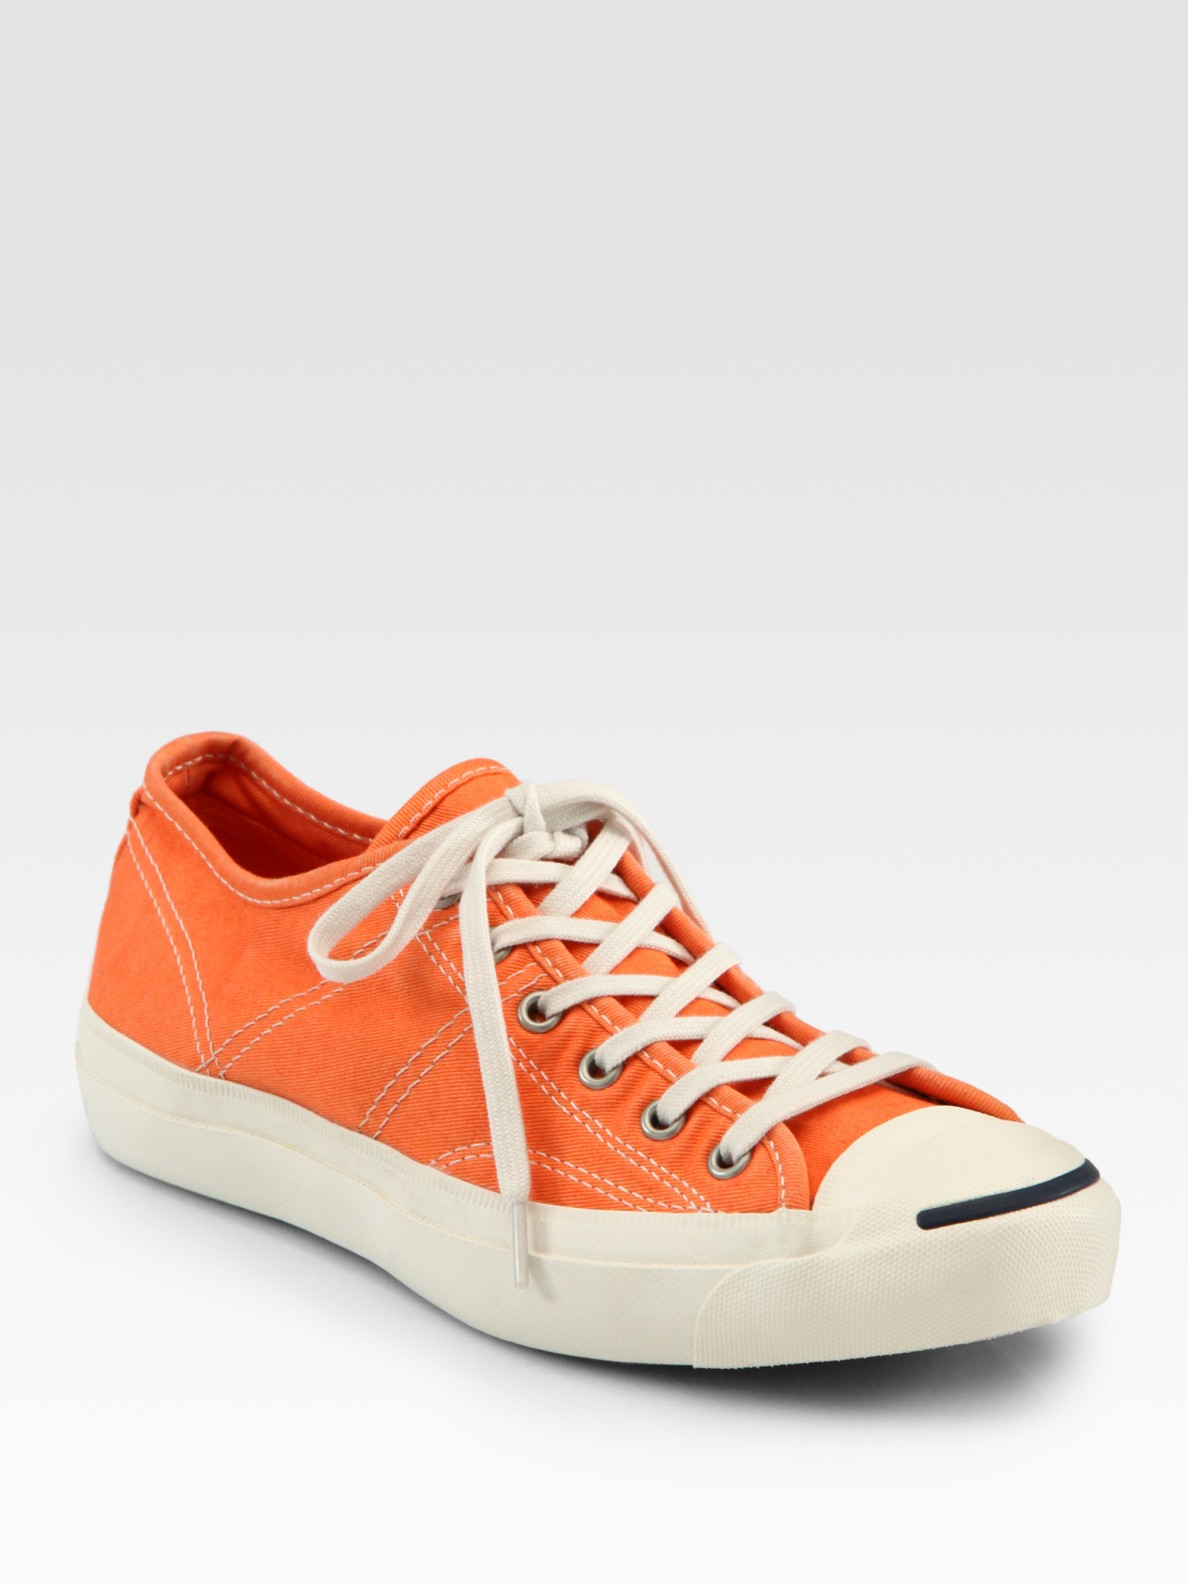 Converse Lux Jack Purcell Lace Up Sneakers In Orange Lyst